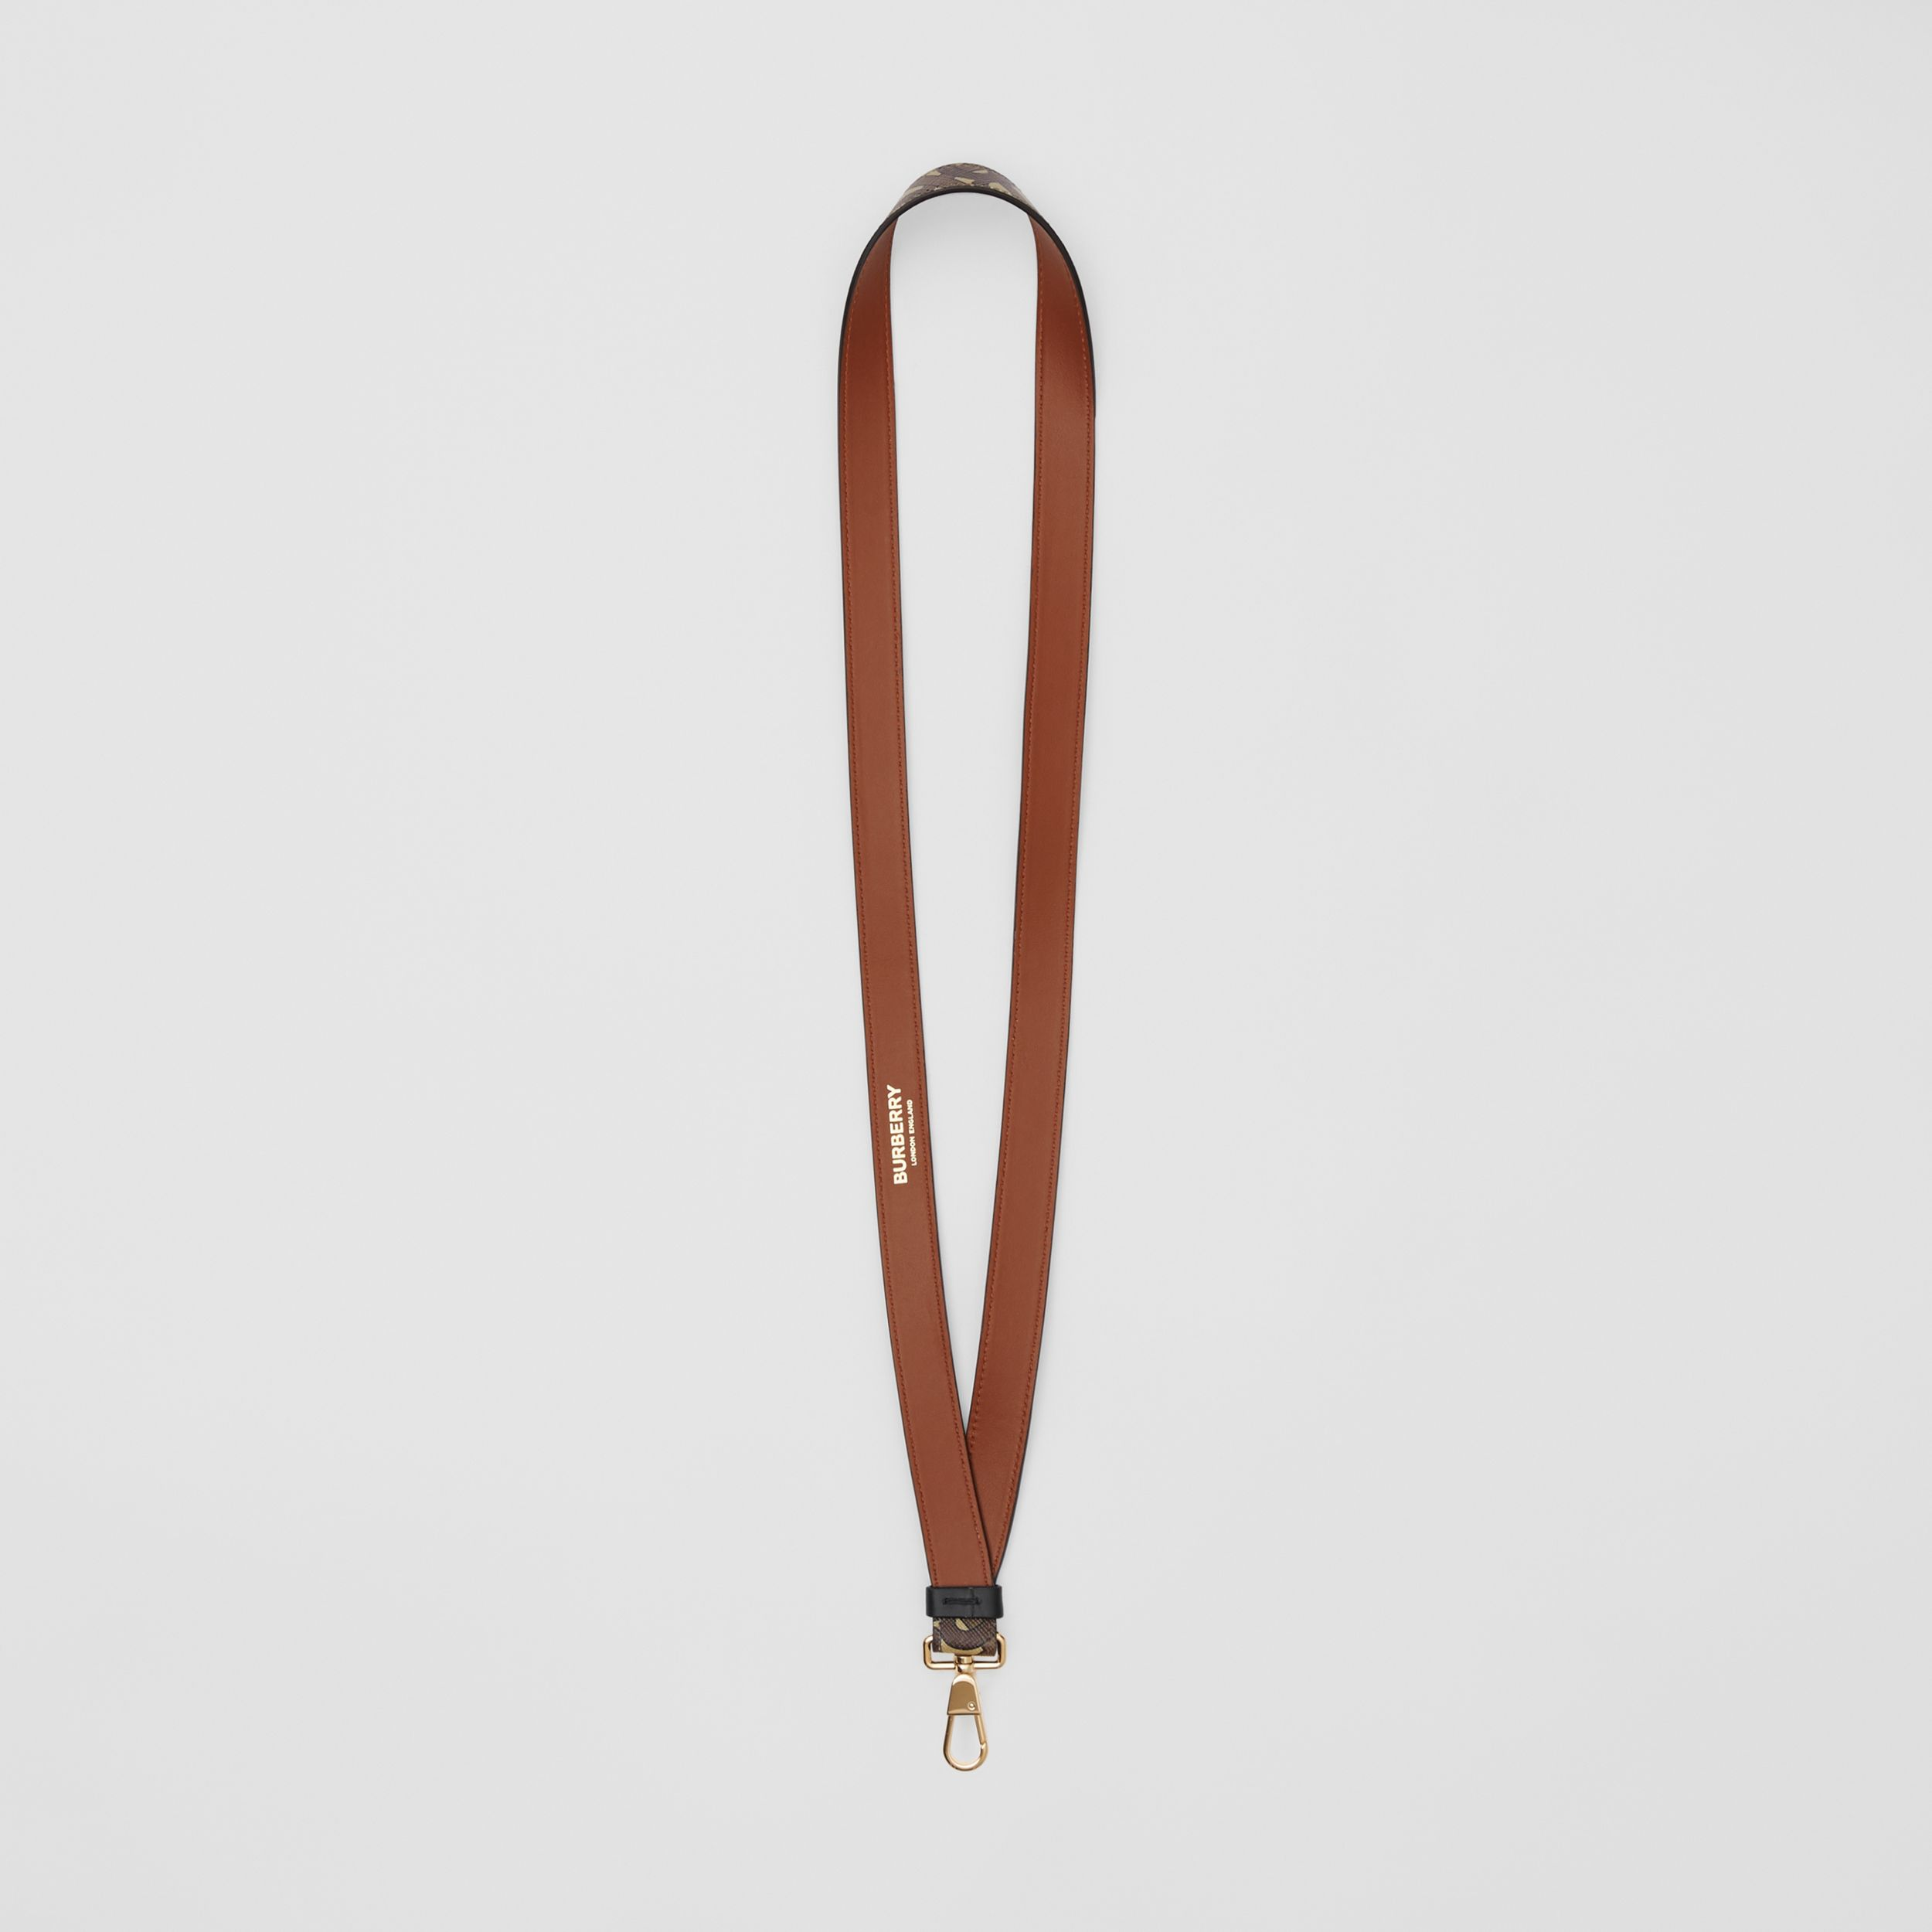 Monogram Print E-canvas and Leather Lanyard in Bridle Brown - Men | Burberry - 4